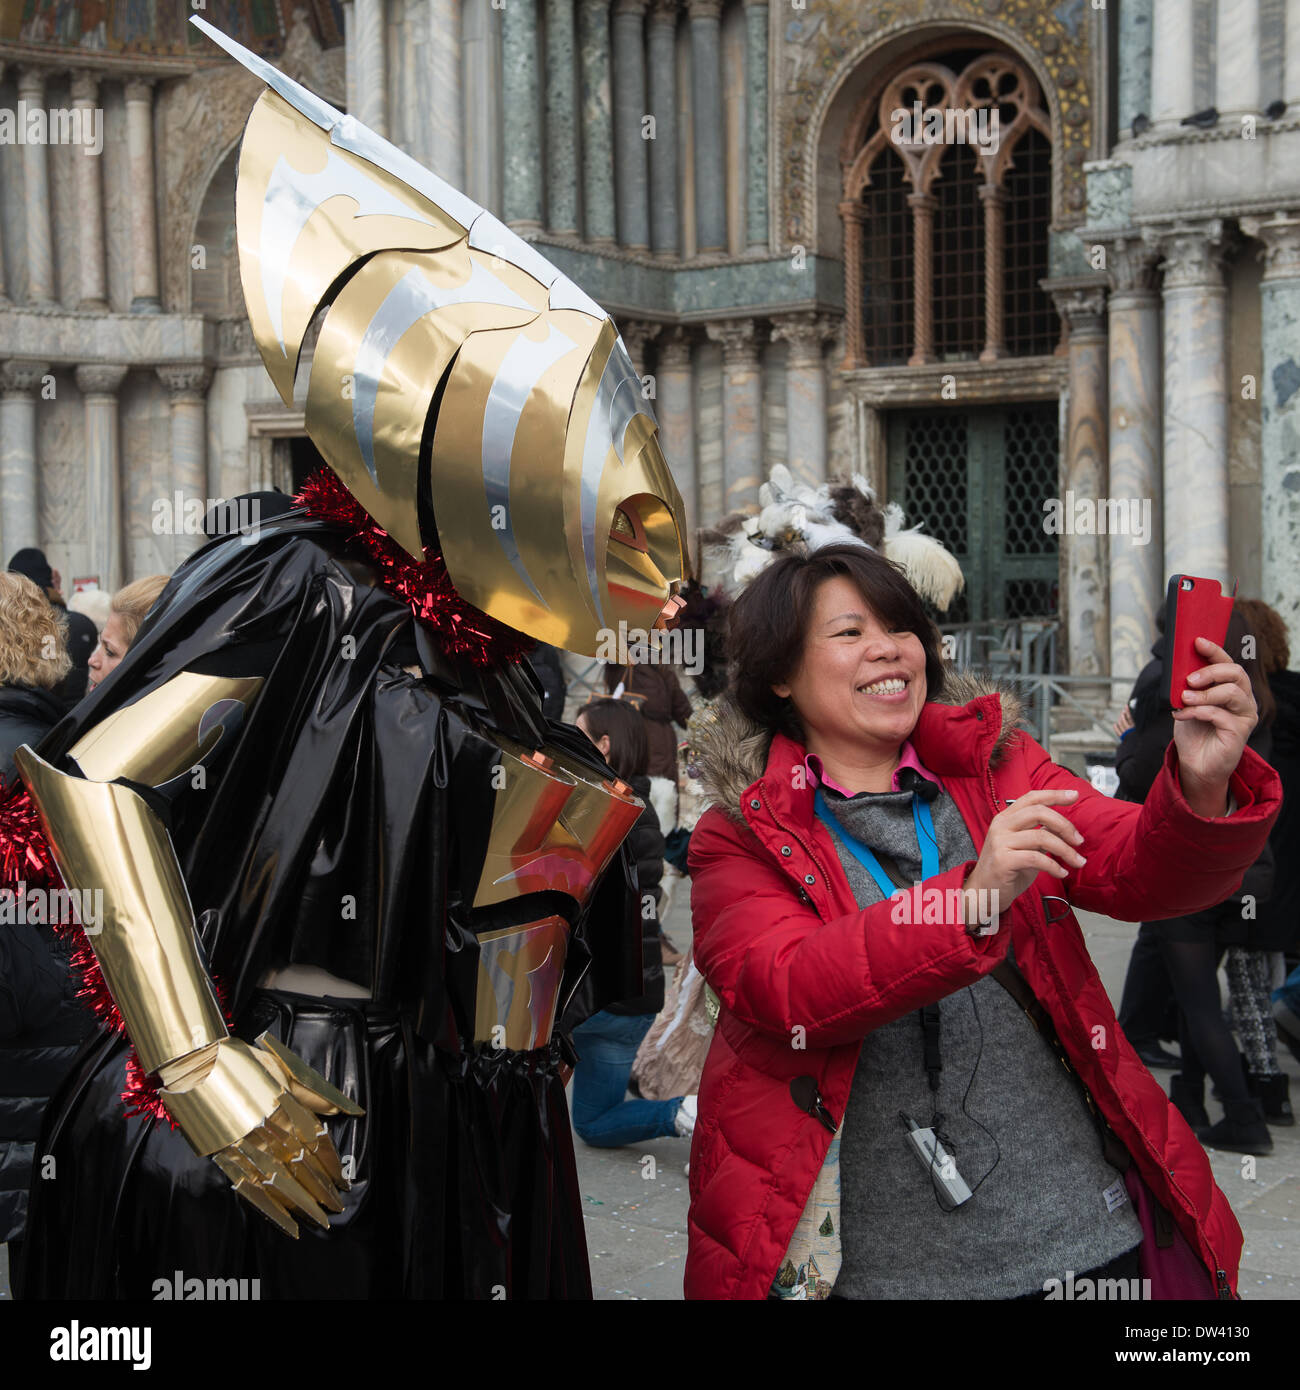 This futuristic female robot costume prompts a tourist to request a photograph with them during the Venice Carnivale - Wednesday 26th February.  sc 1 st  Alamy & Venice Italy. 26th February 2014. This futuristic female robot ...